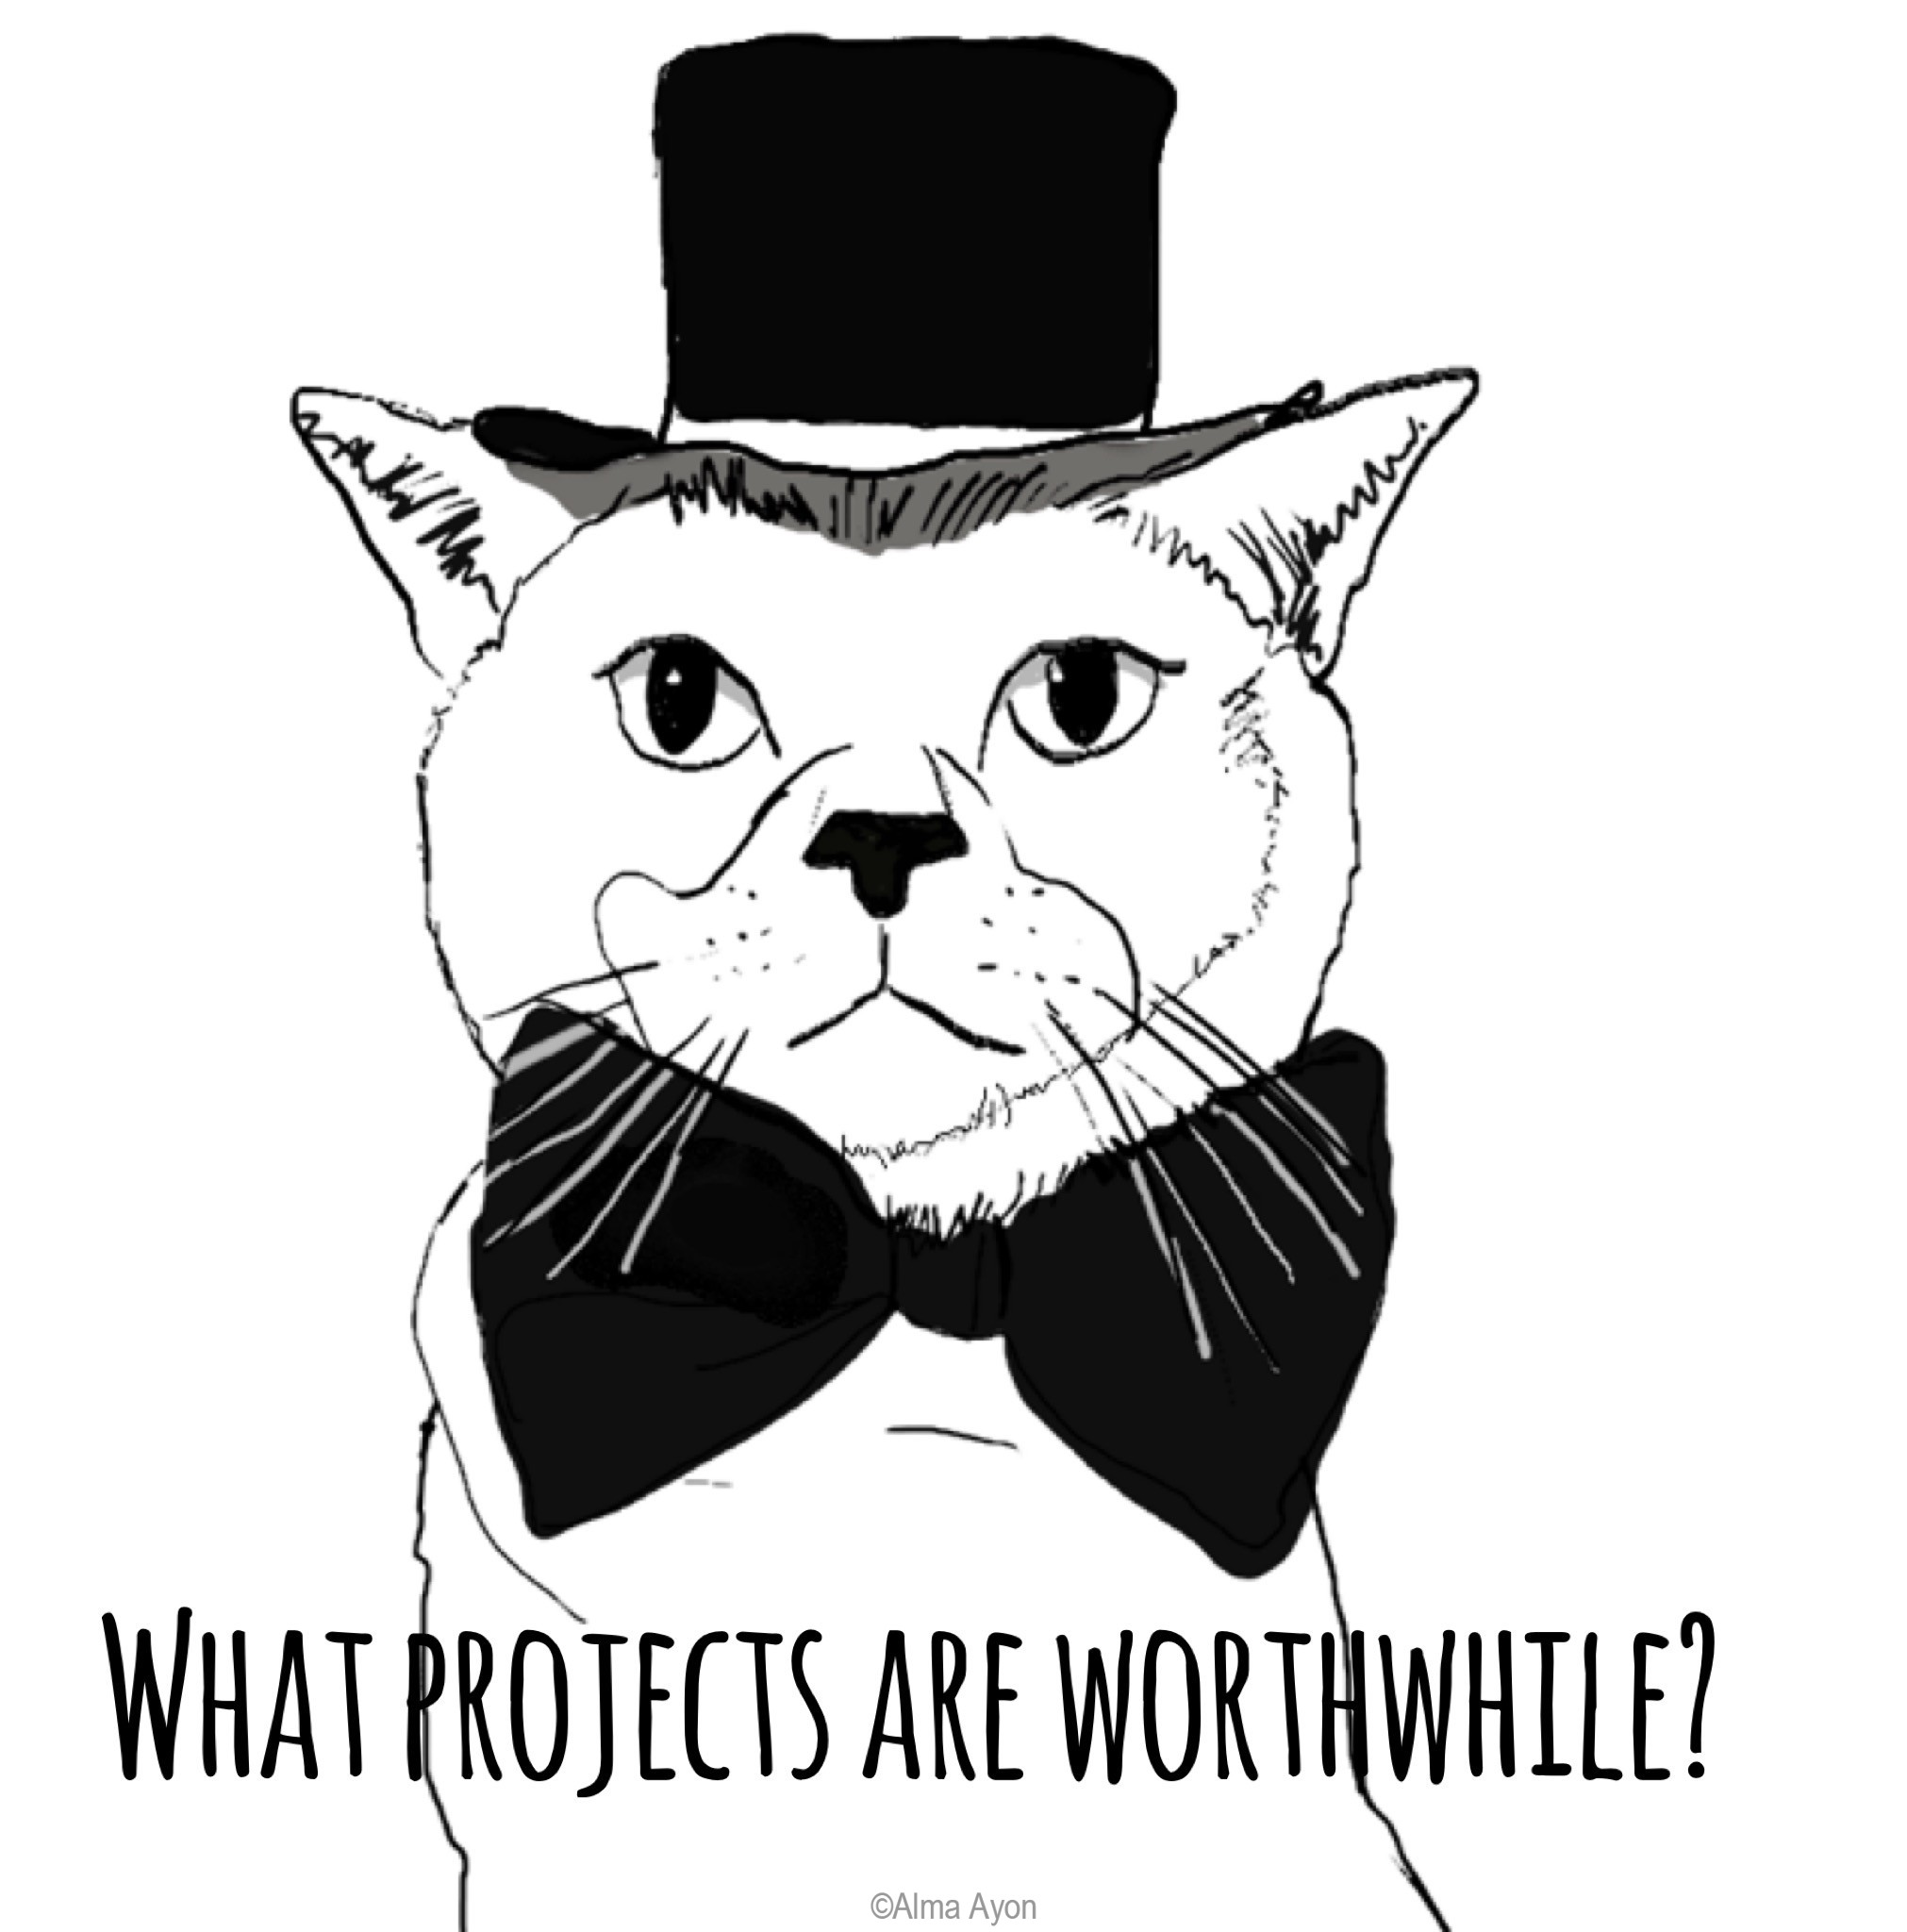 What projects are worthwhile?